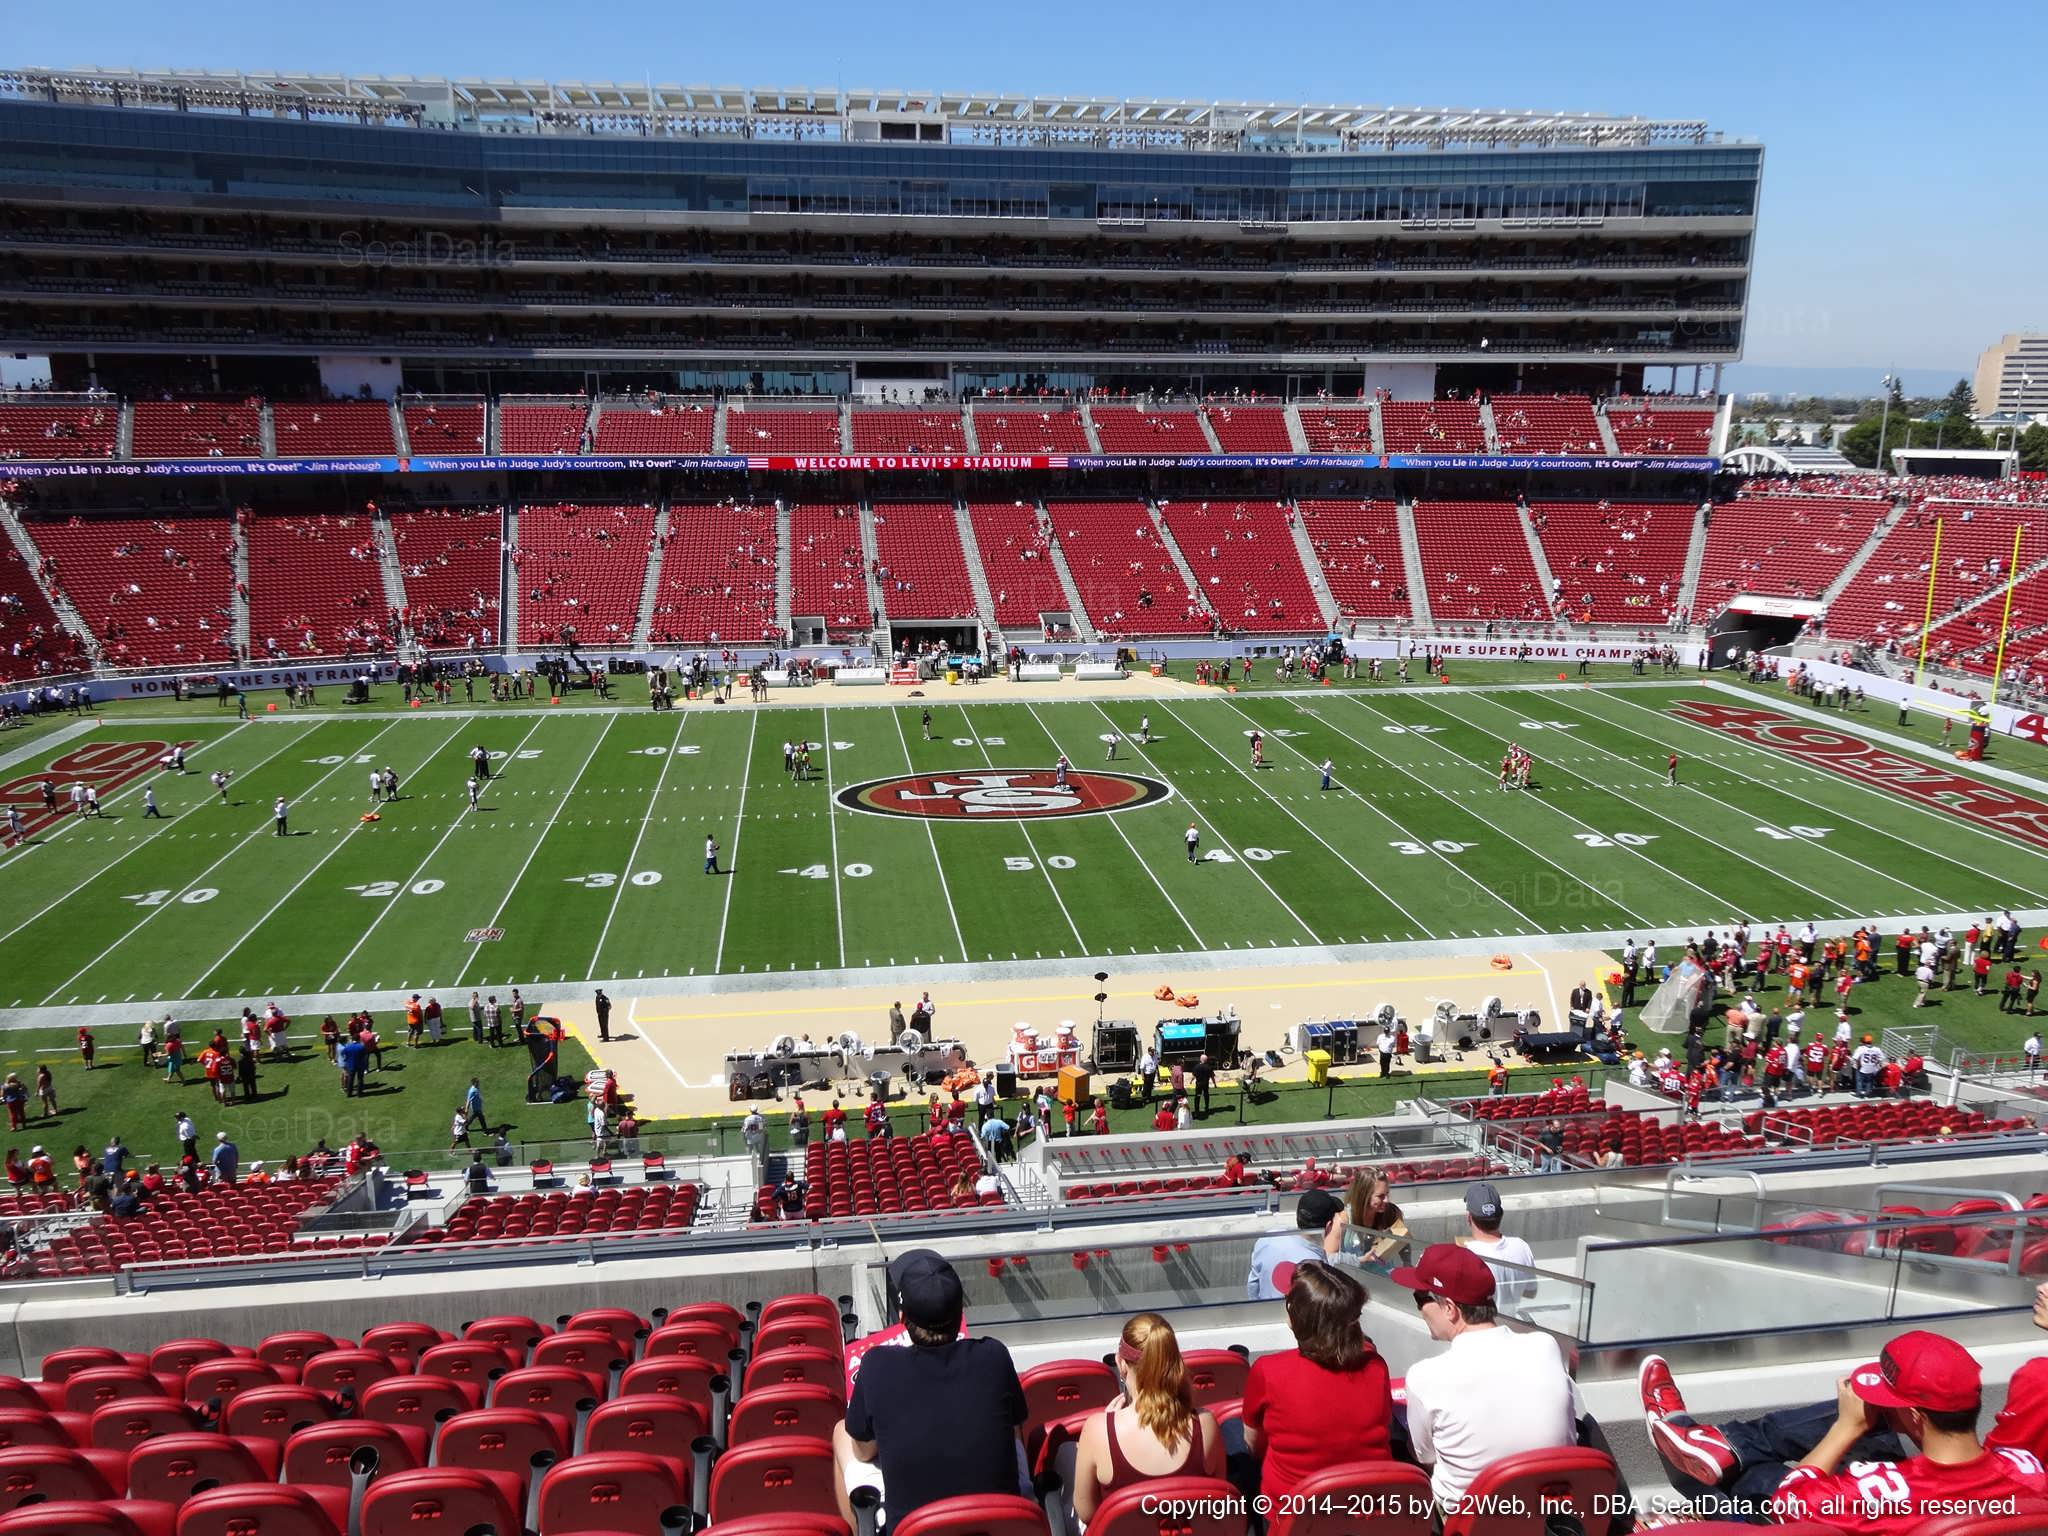 Seat view from section 217 at Levi's Stadium, home of the San Francisco 49ers